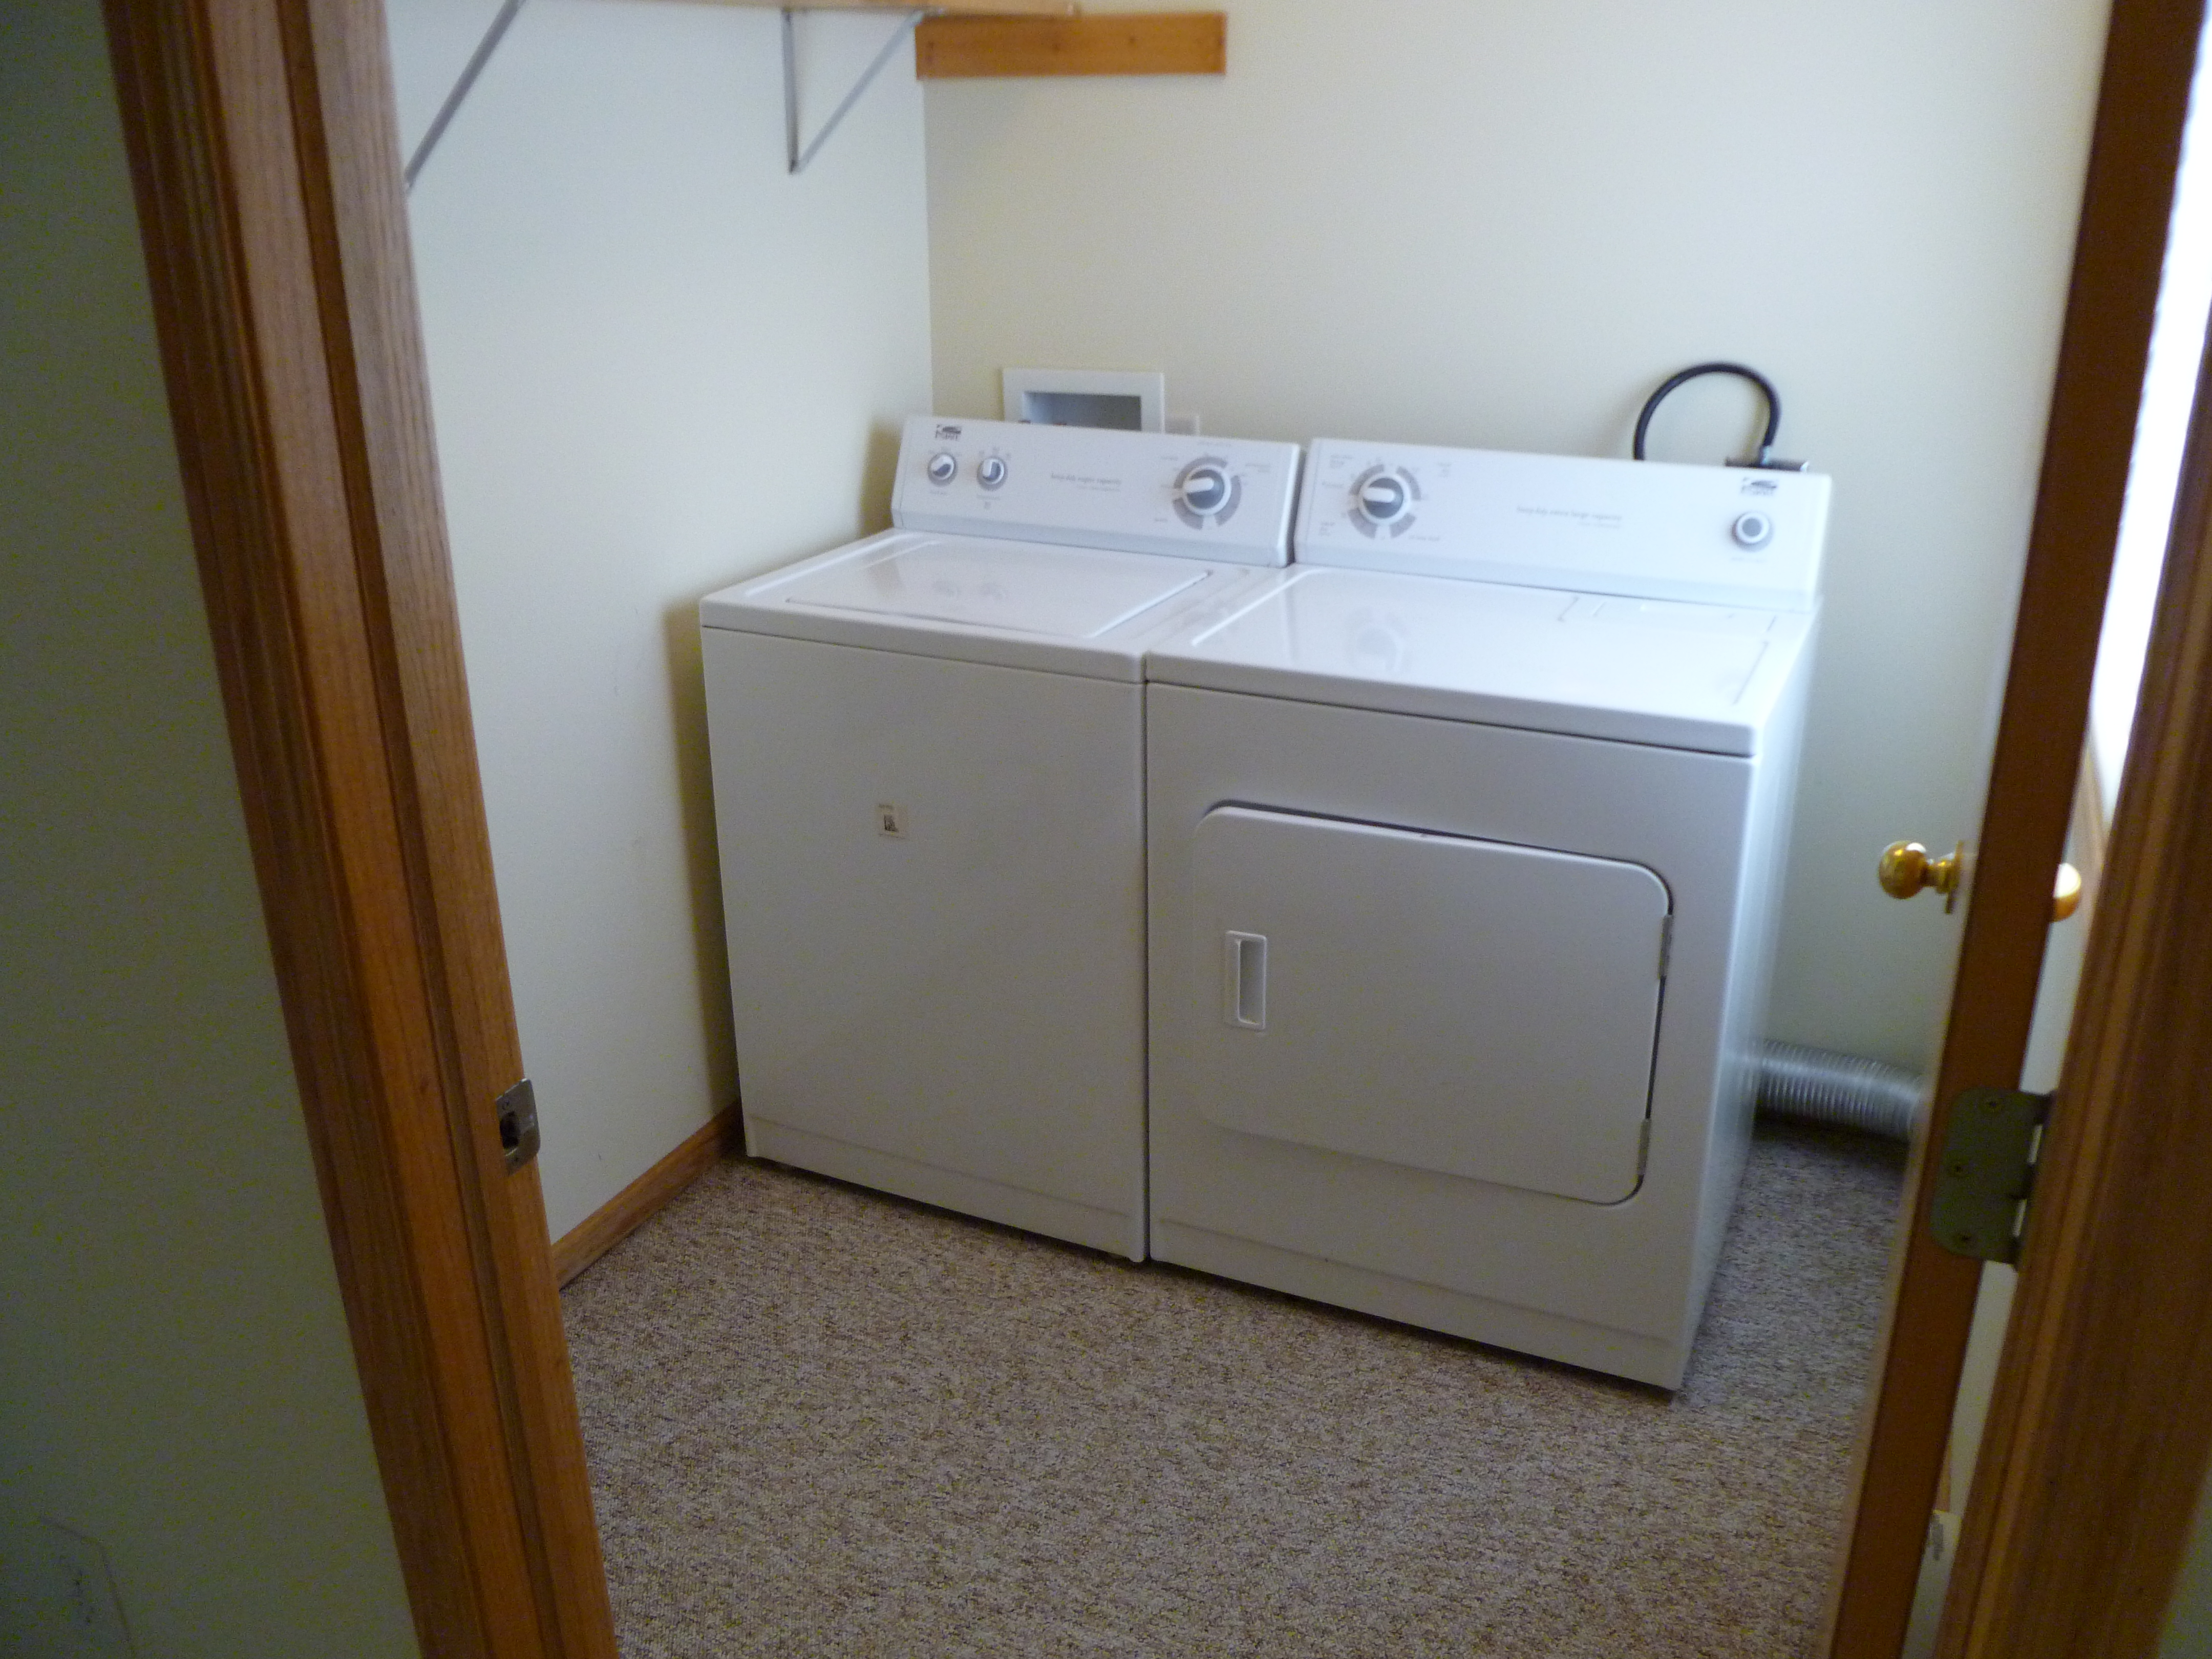 apartment for rent in menomonie wi student rental uw stout laundry with washer dryer laundry room in 3 bedroom student rental